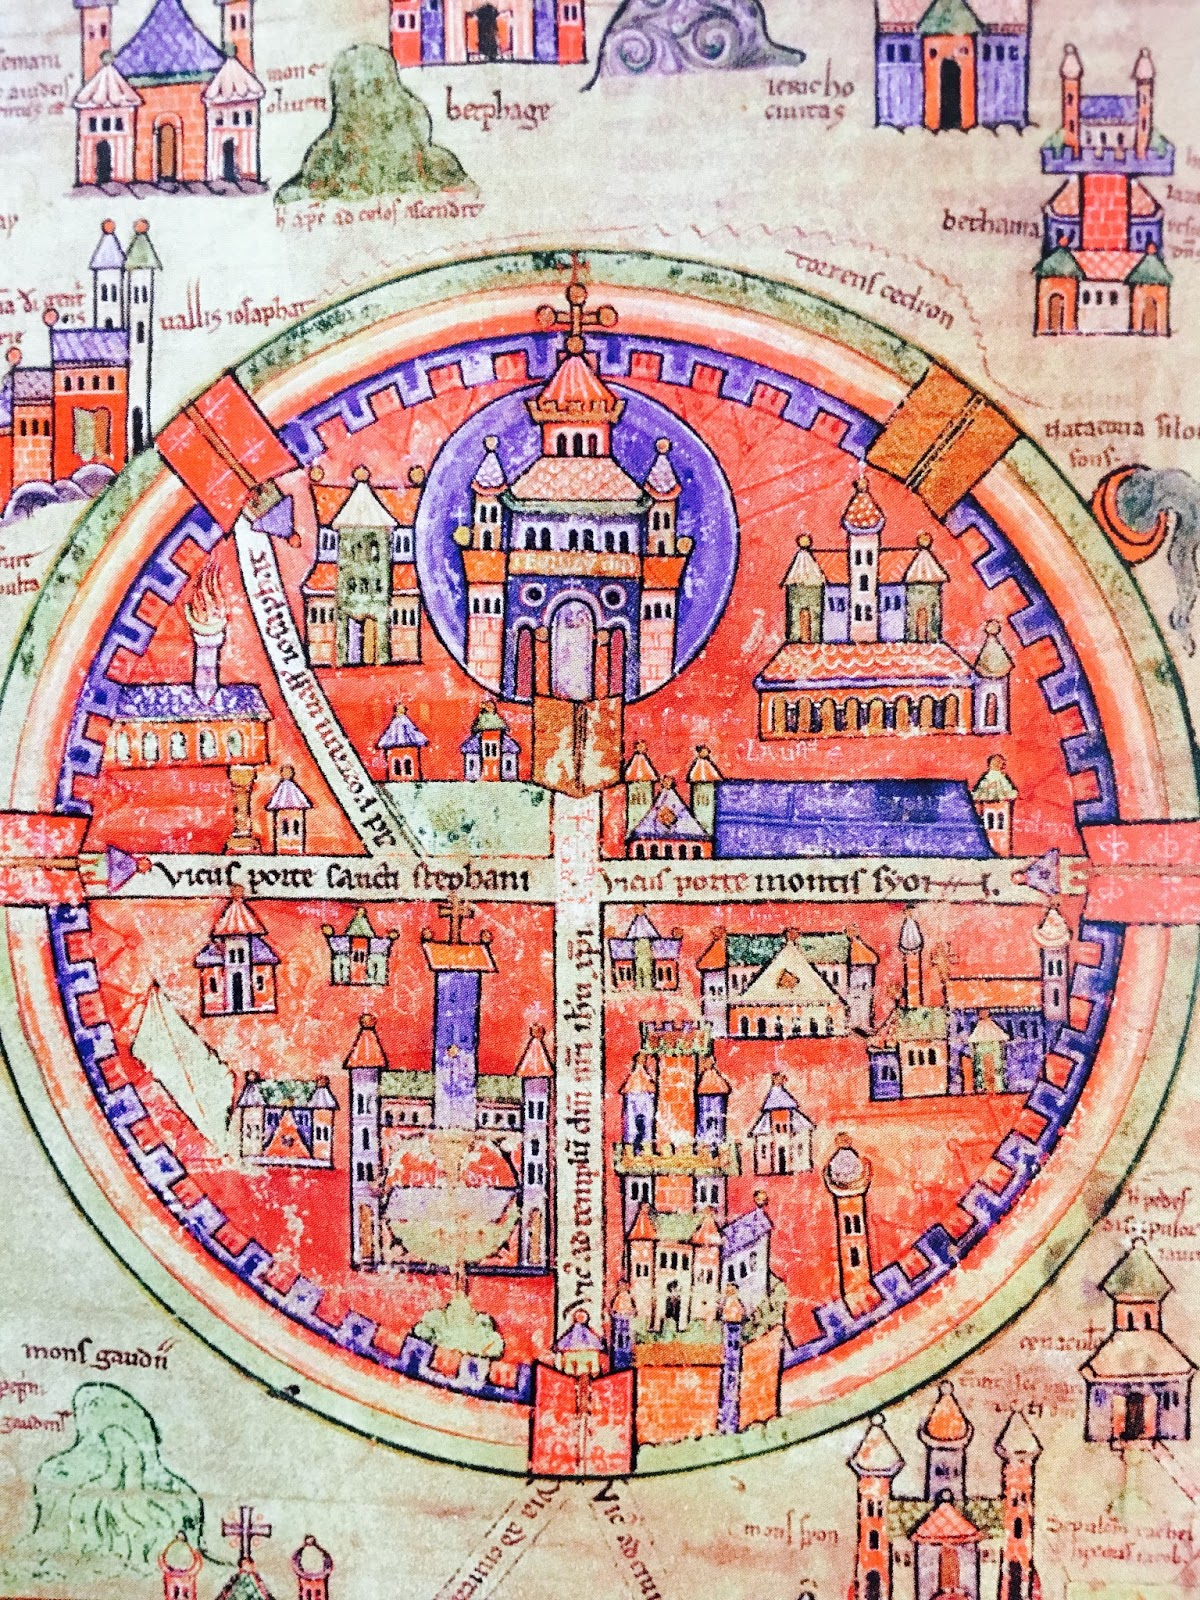 Orbis catholicus secundus pilgrims map of jerusalem pilgrims map of jerusalem notice the holy sepulchre is at the center gumiabroncs Choice Image